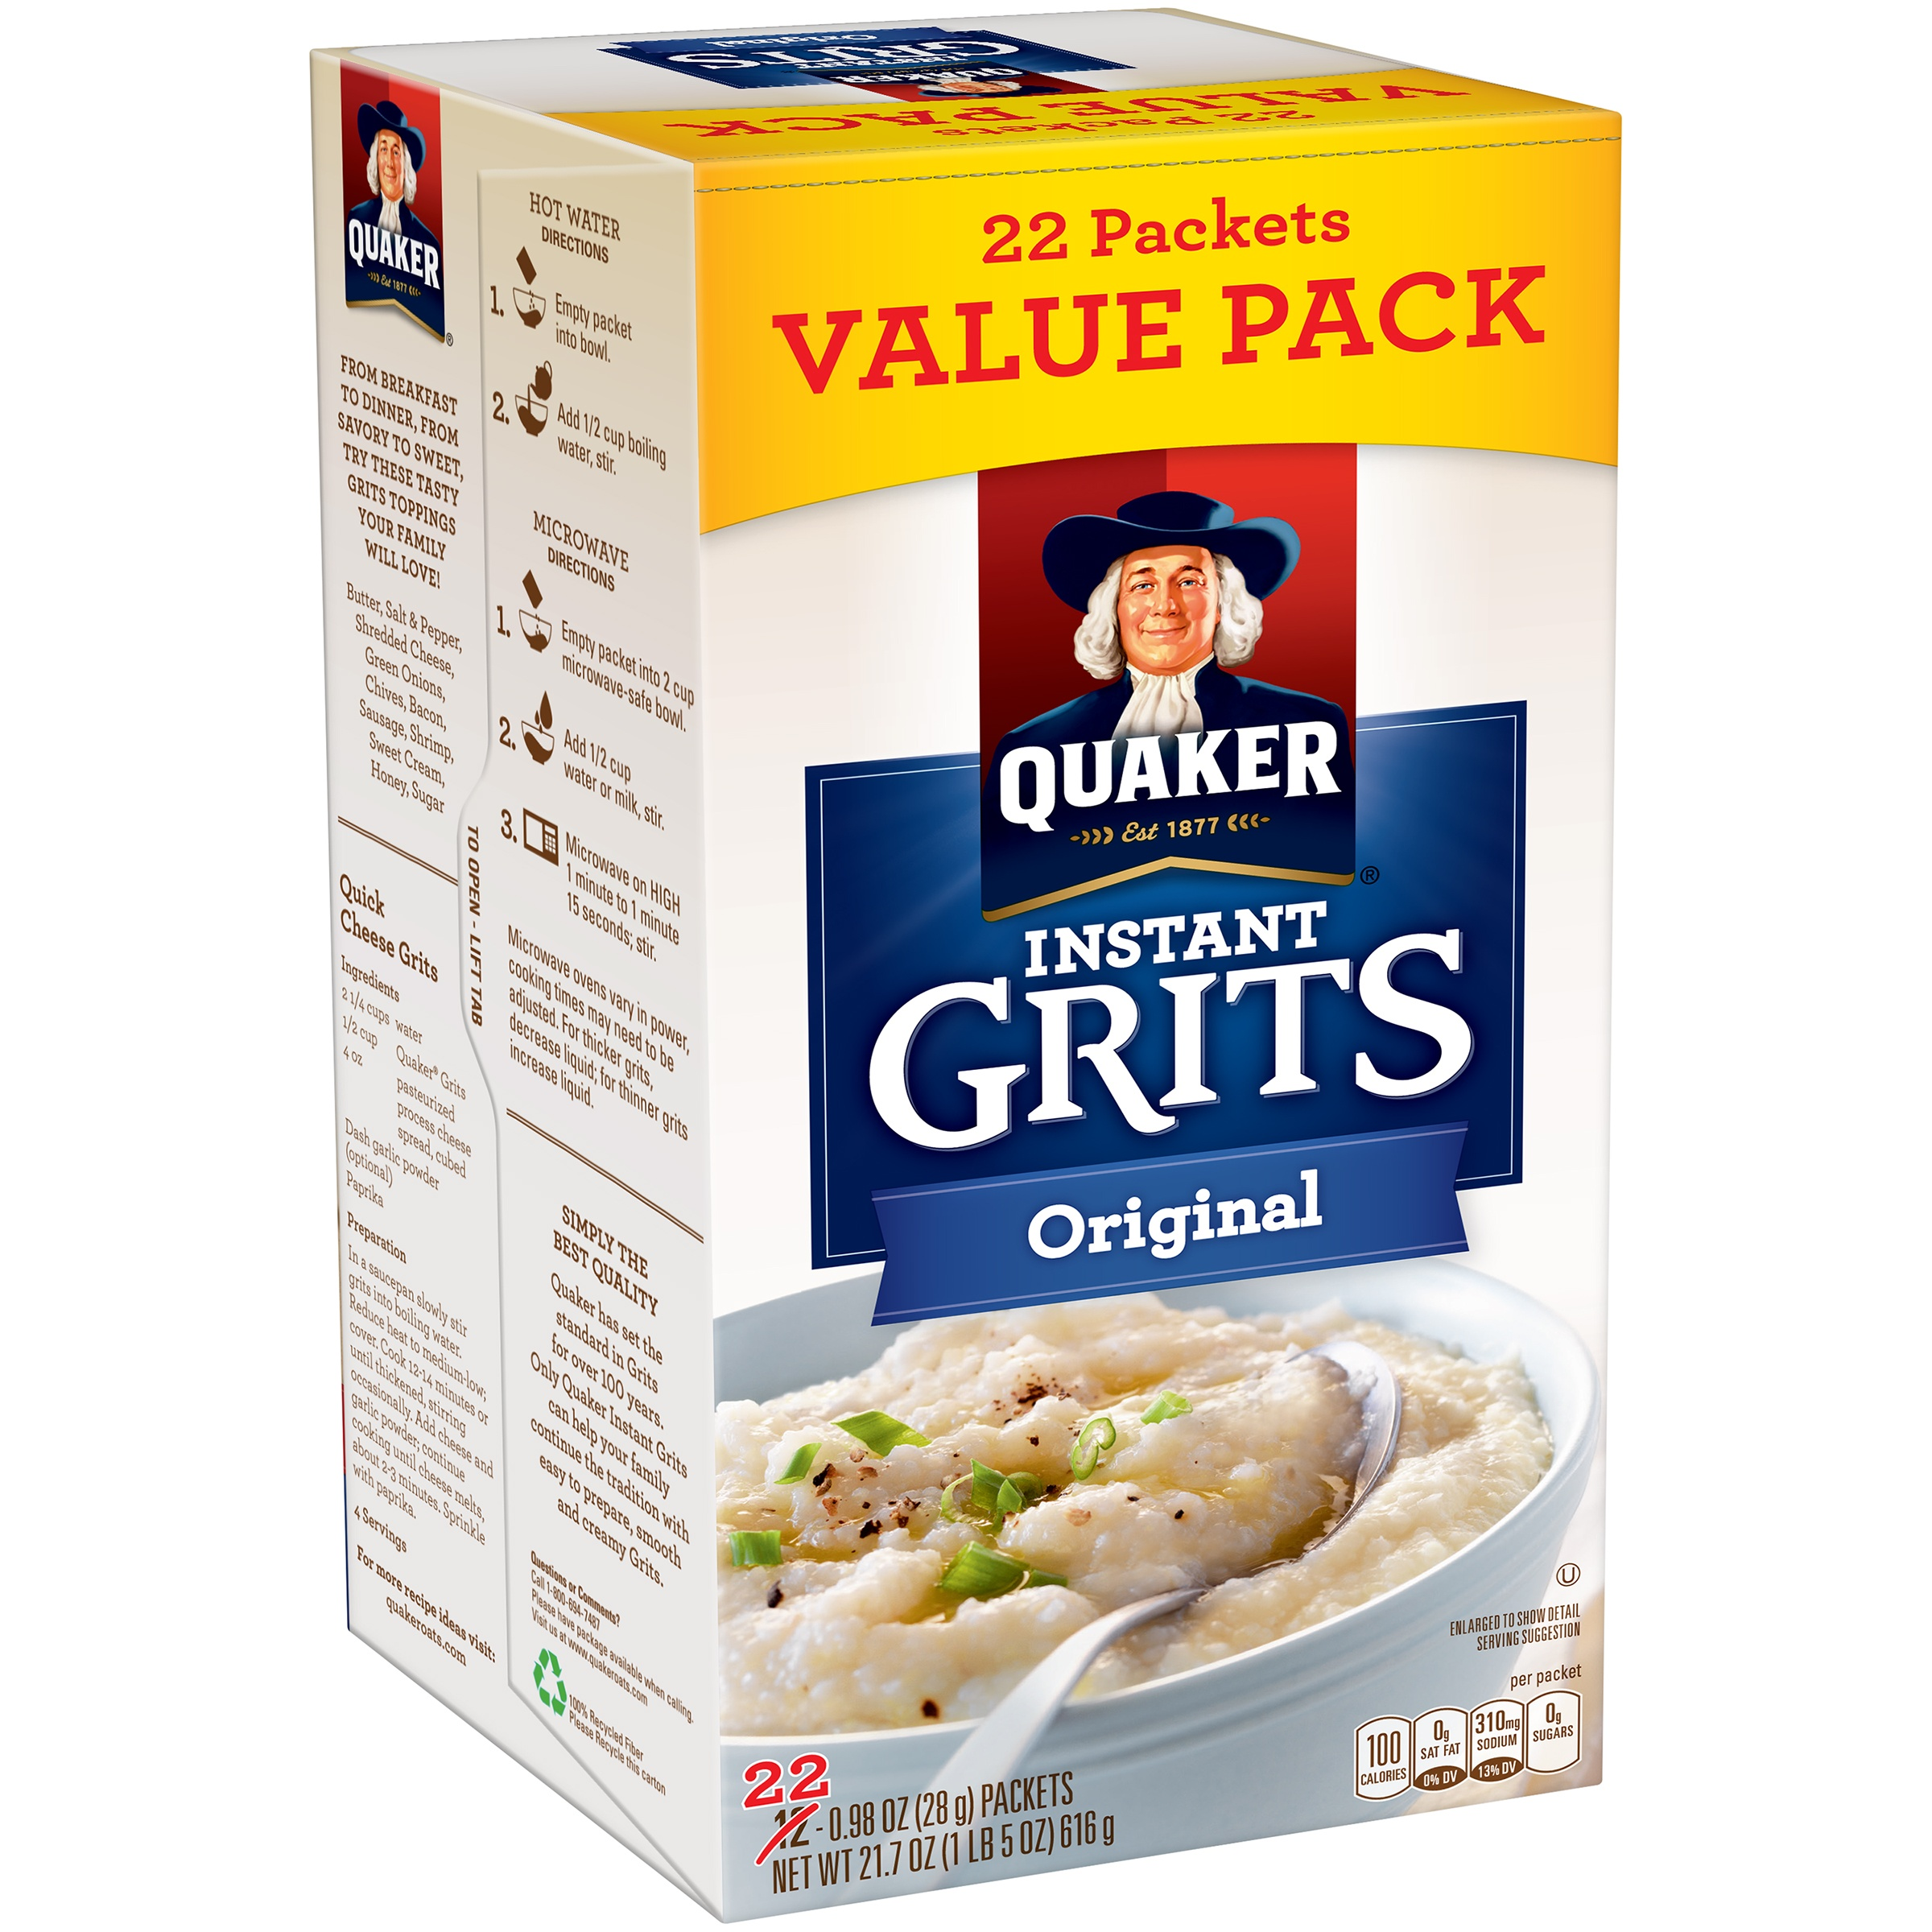 Quaker Original Instant Grits Value Pack, 22 count, 0.98 oz Packets